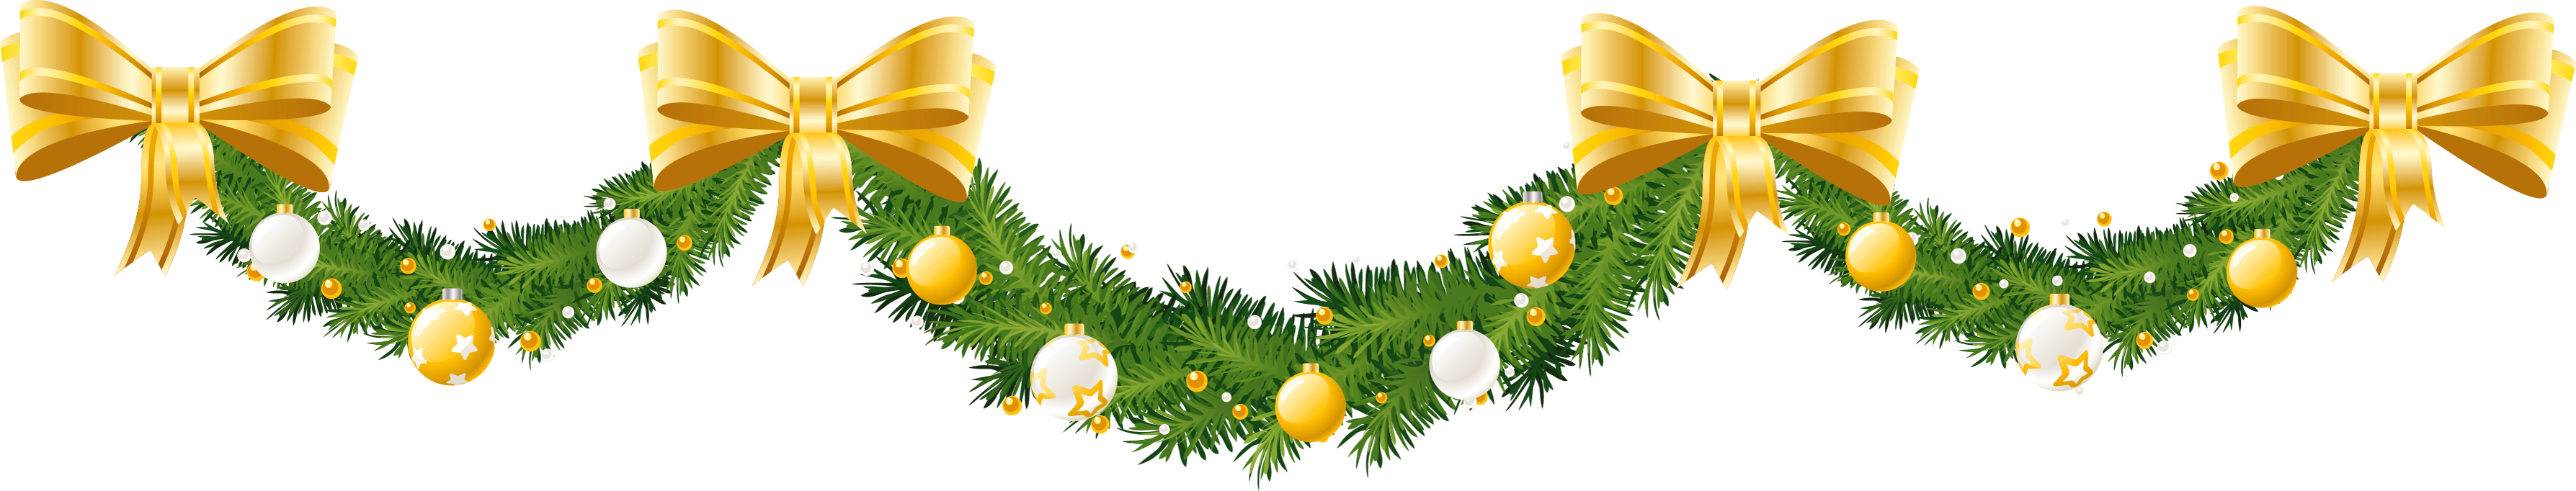 Christmas garland png. Transparent images all picture